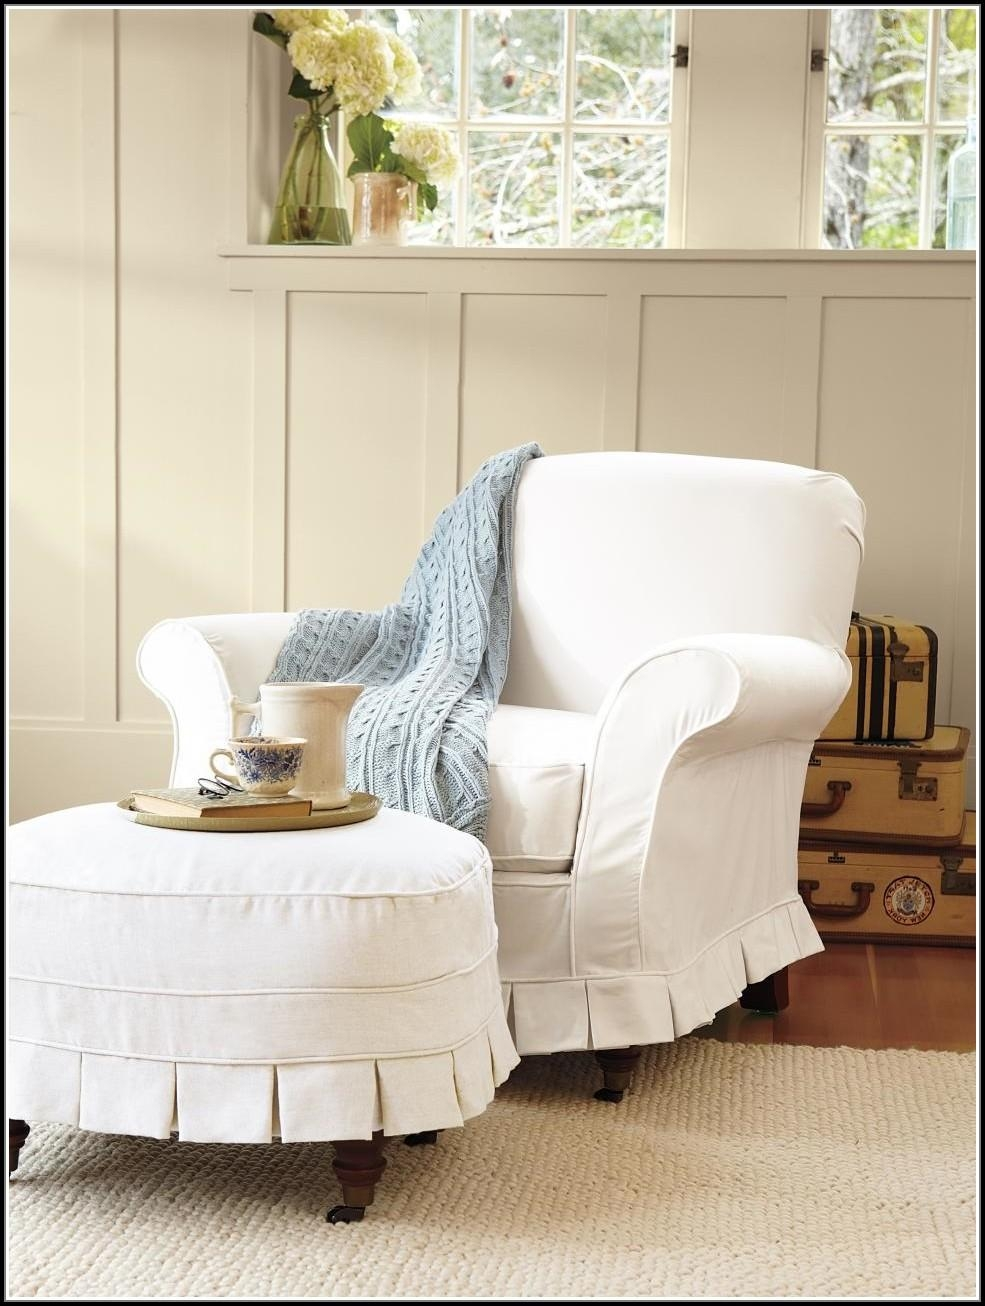 Parson Chair Slipcovers Pottery Barn – Chair : Home Furniture Regarding Pottery Barn Chair Slipcovers (Image 12 of 20)